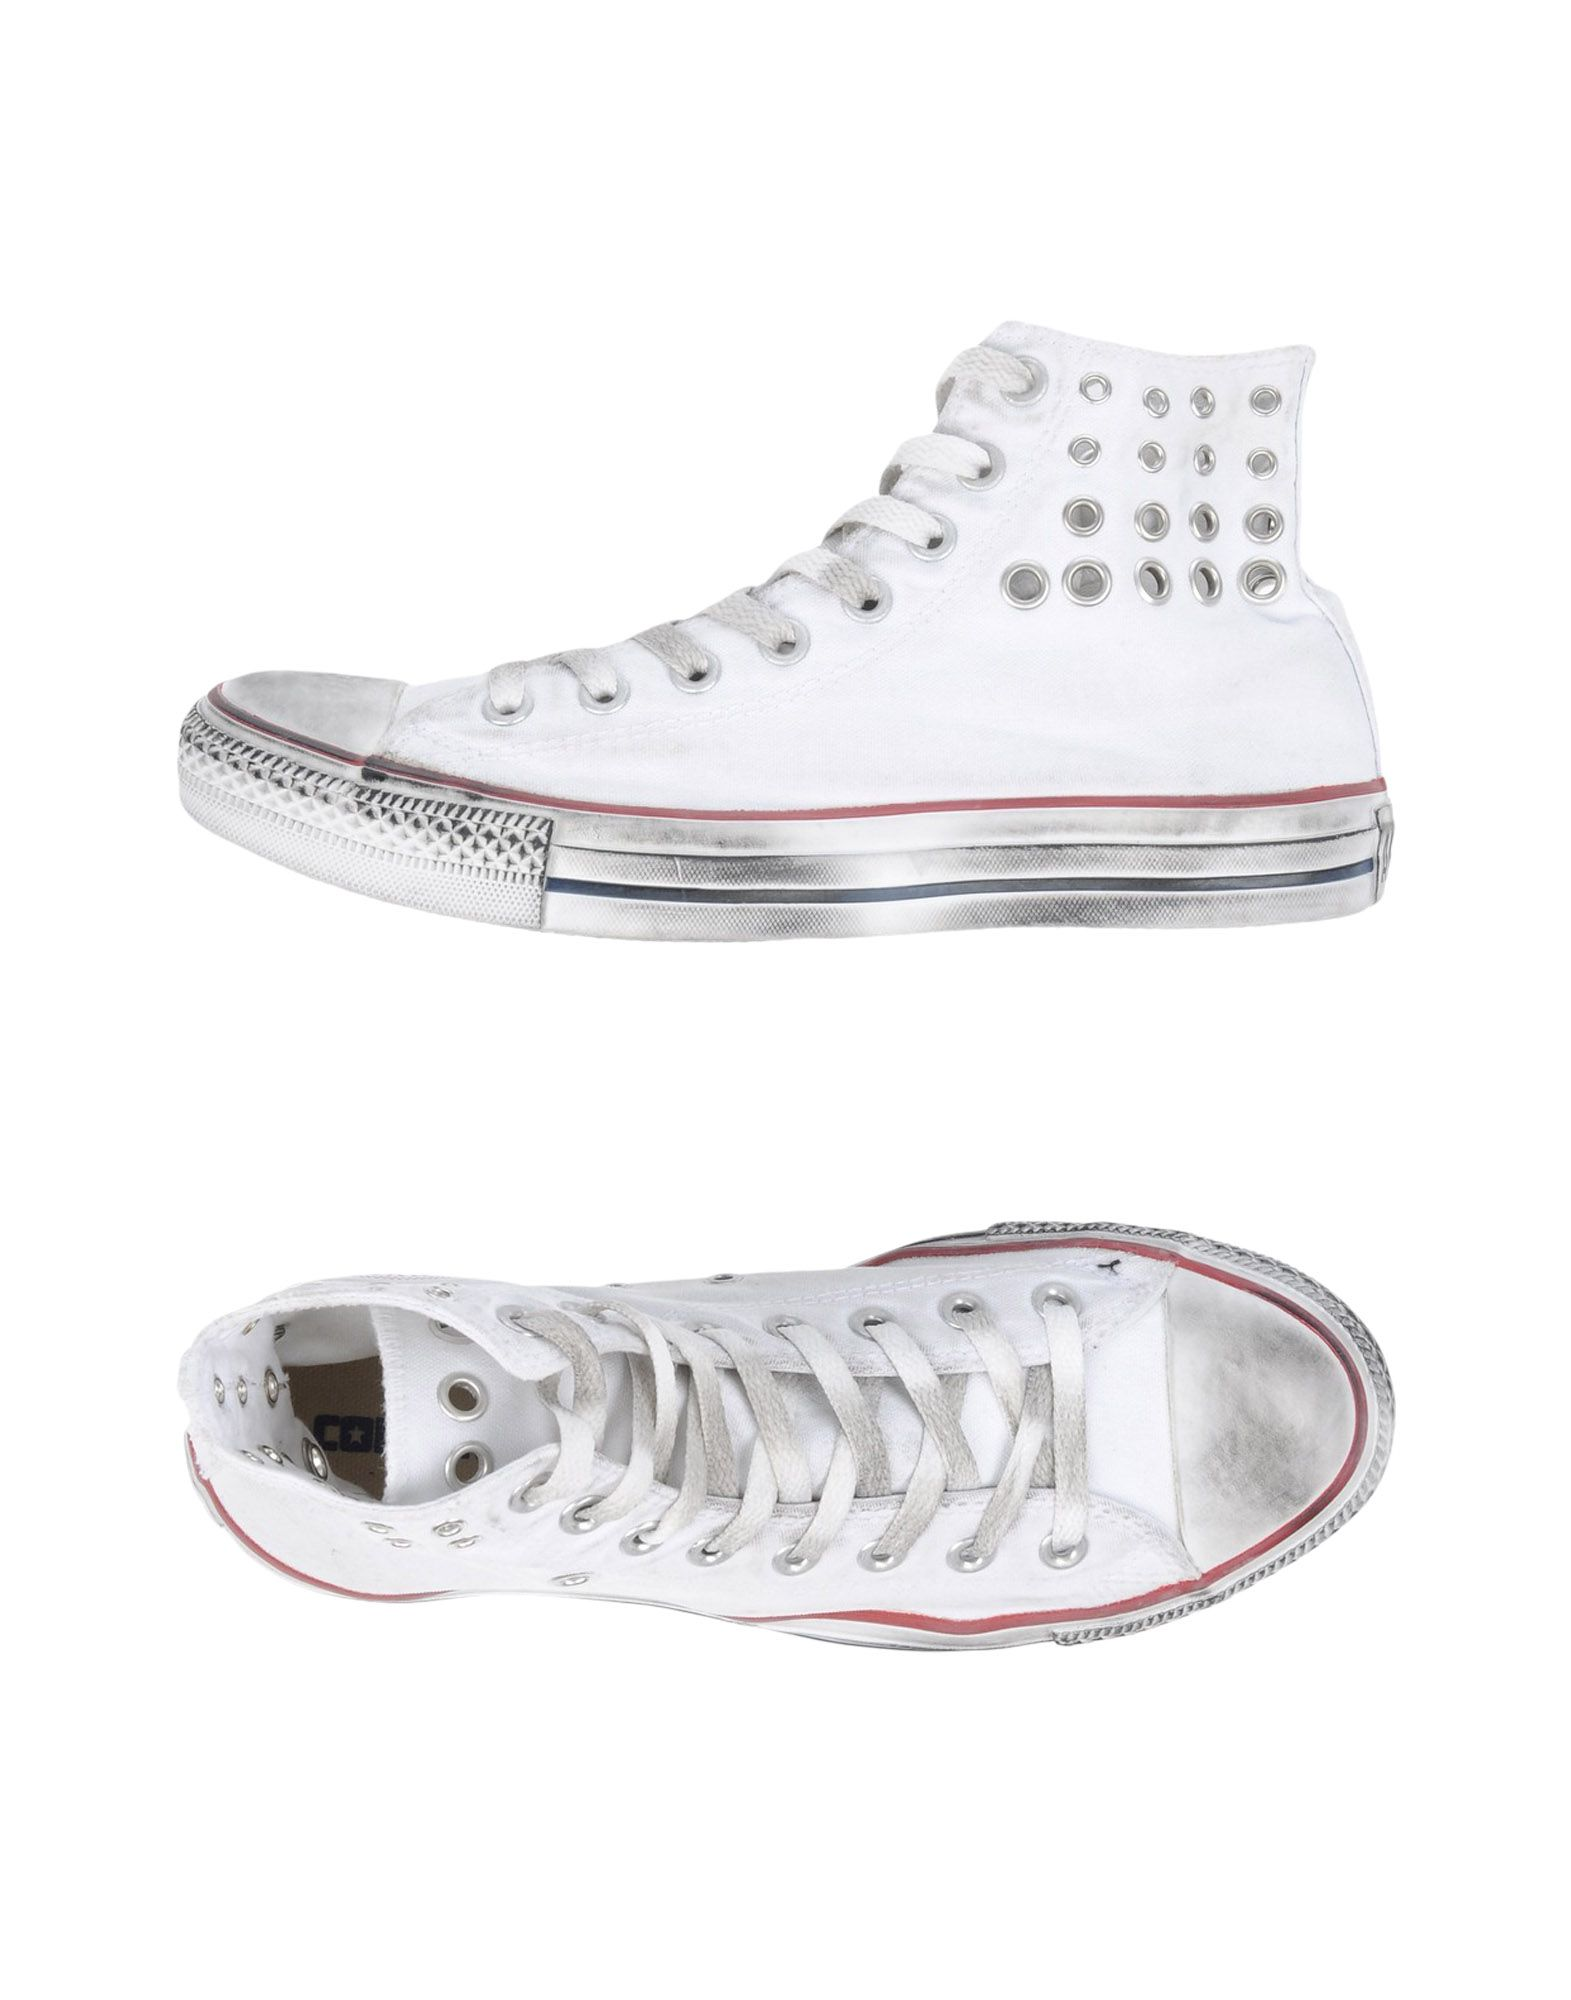 CONVERSE LIMITED EDITION Высокие кеды и кроссовки new mf8 eitan s star icosaix radiolarian puzzle magic cube black and primary limited edition very challenging welcome to buy